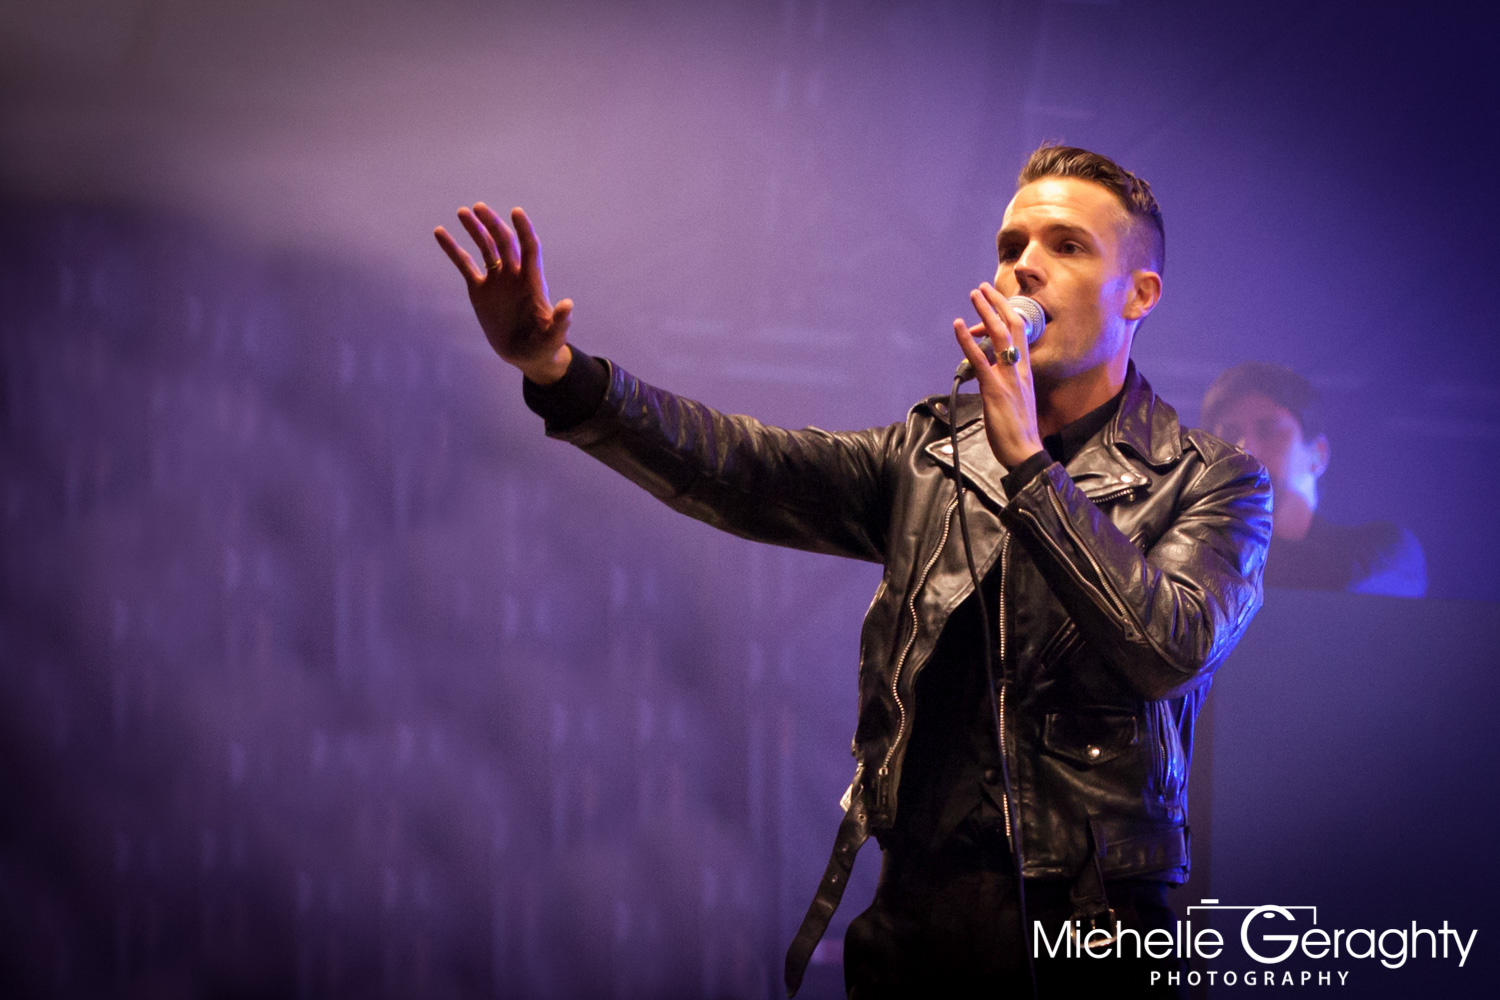 The Killers at Electric Picnic